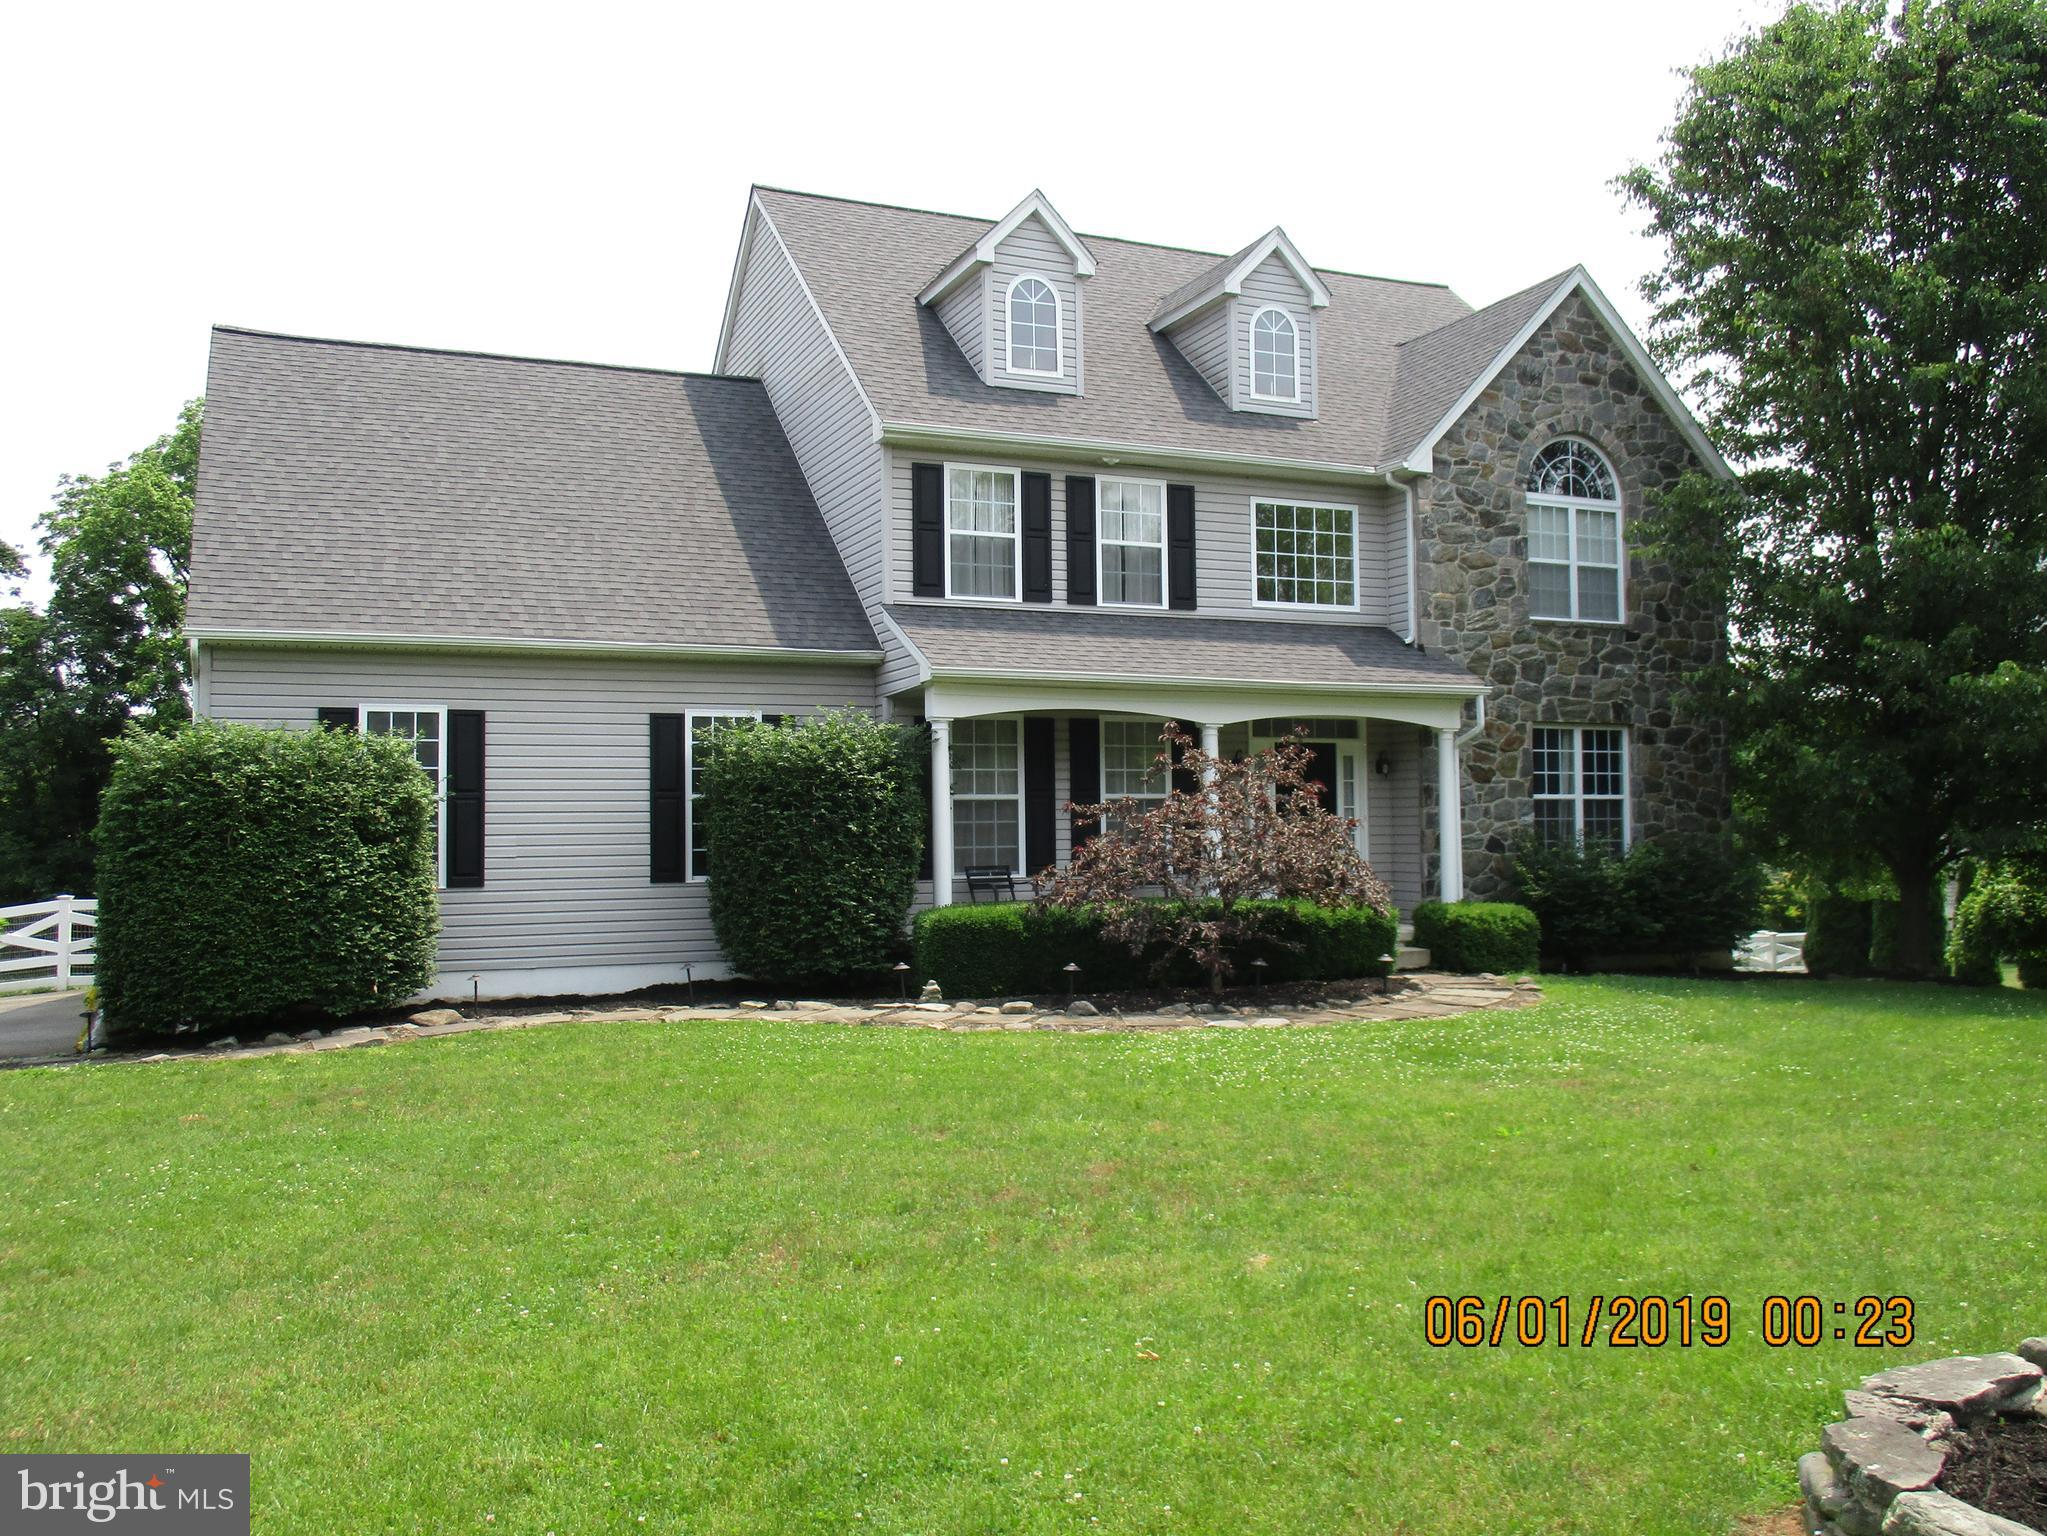 52 S VIEW ROAD, RISING SUN, MD 21911